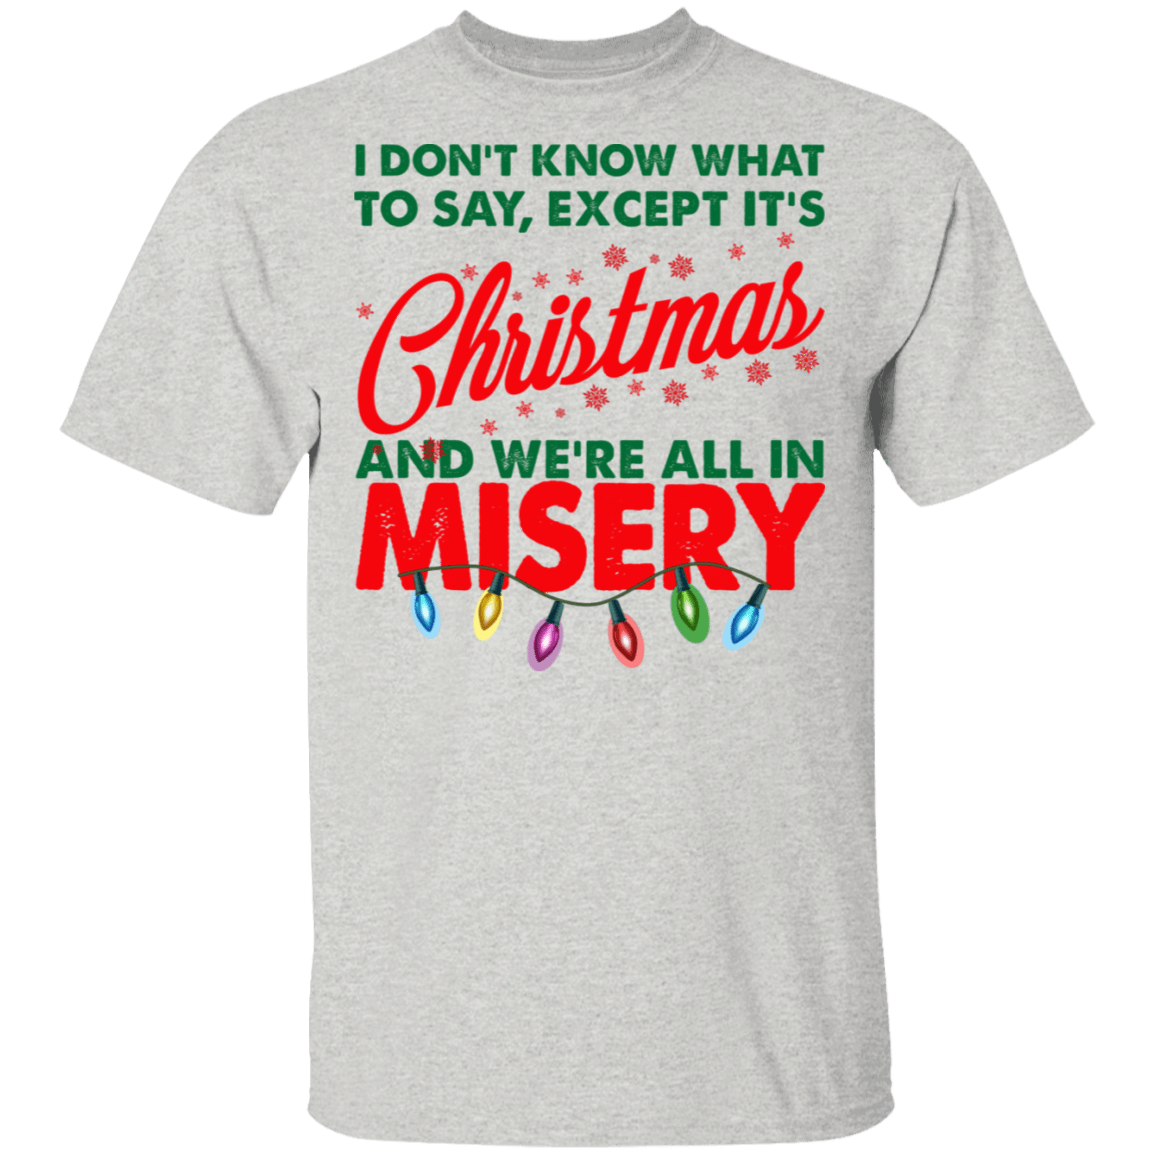 I Don't Know What To Say Except It's Christmas And We're All In Misery T-Shirts, Hoodies, Tank 1049-9952-81138429-48184 - Tee Ript